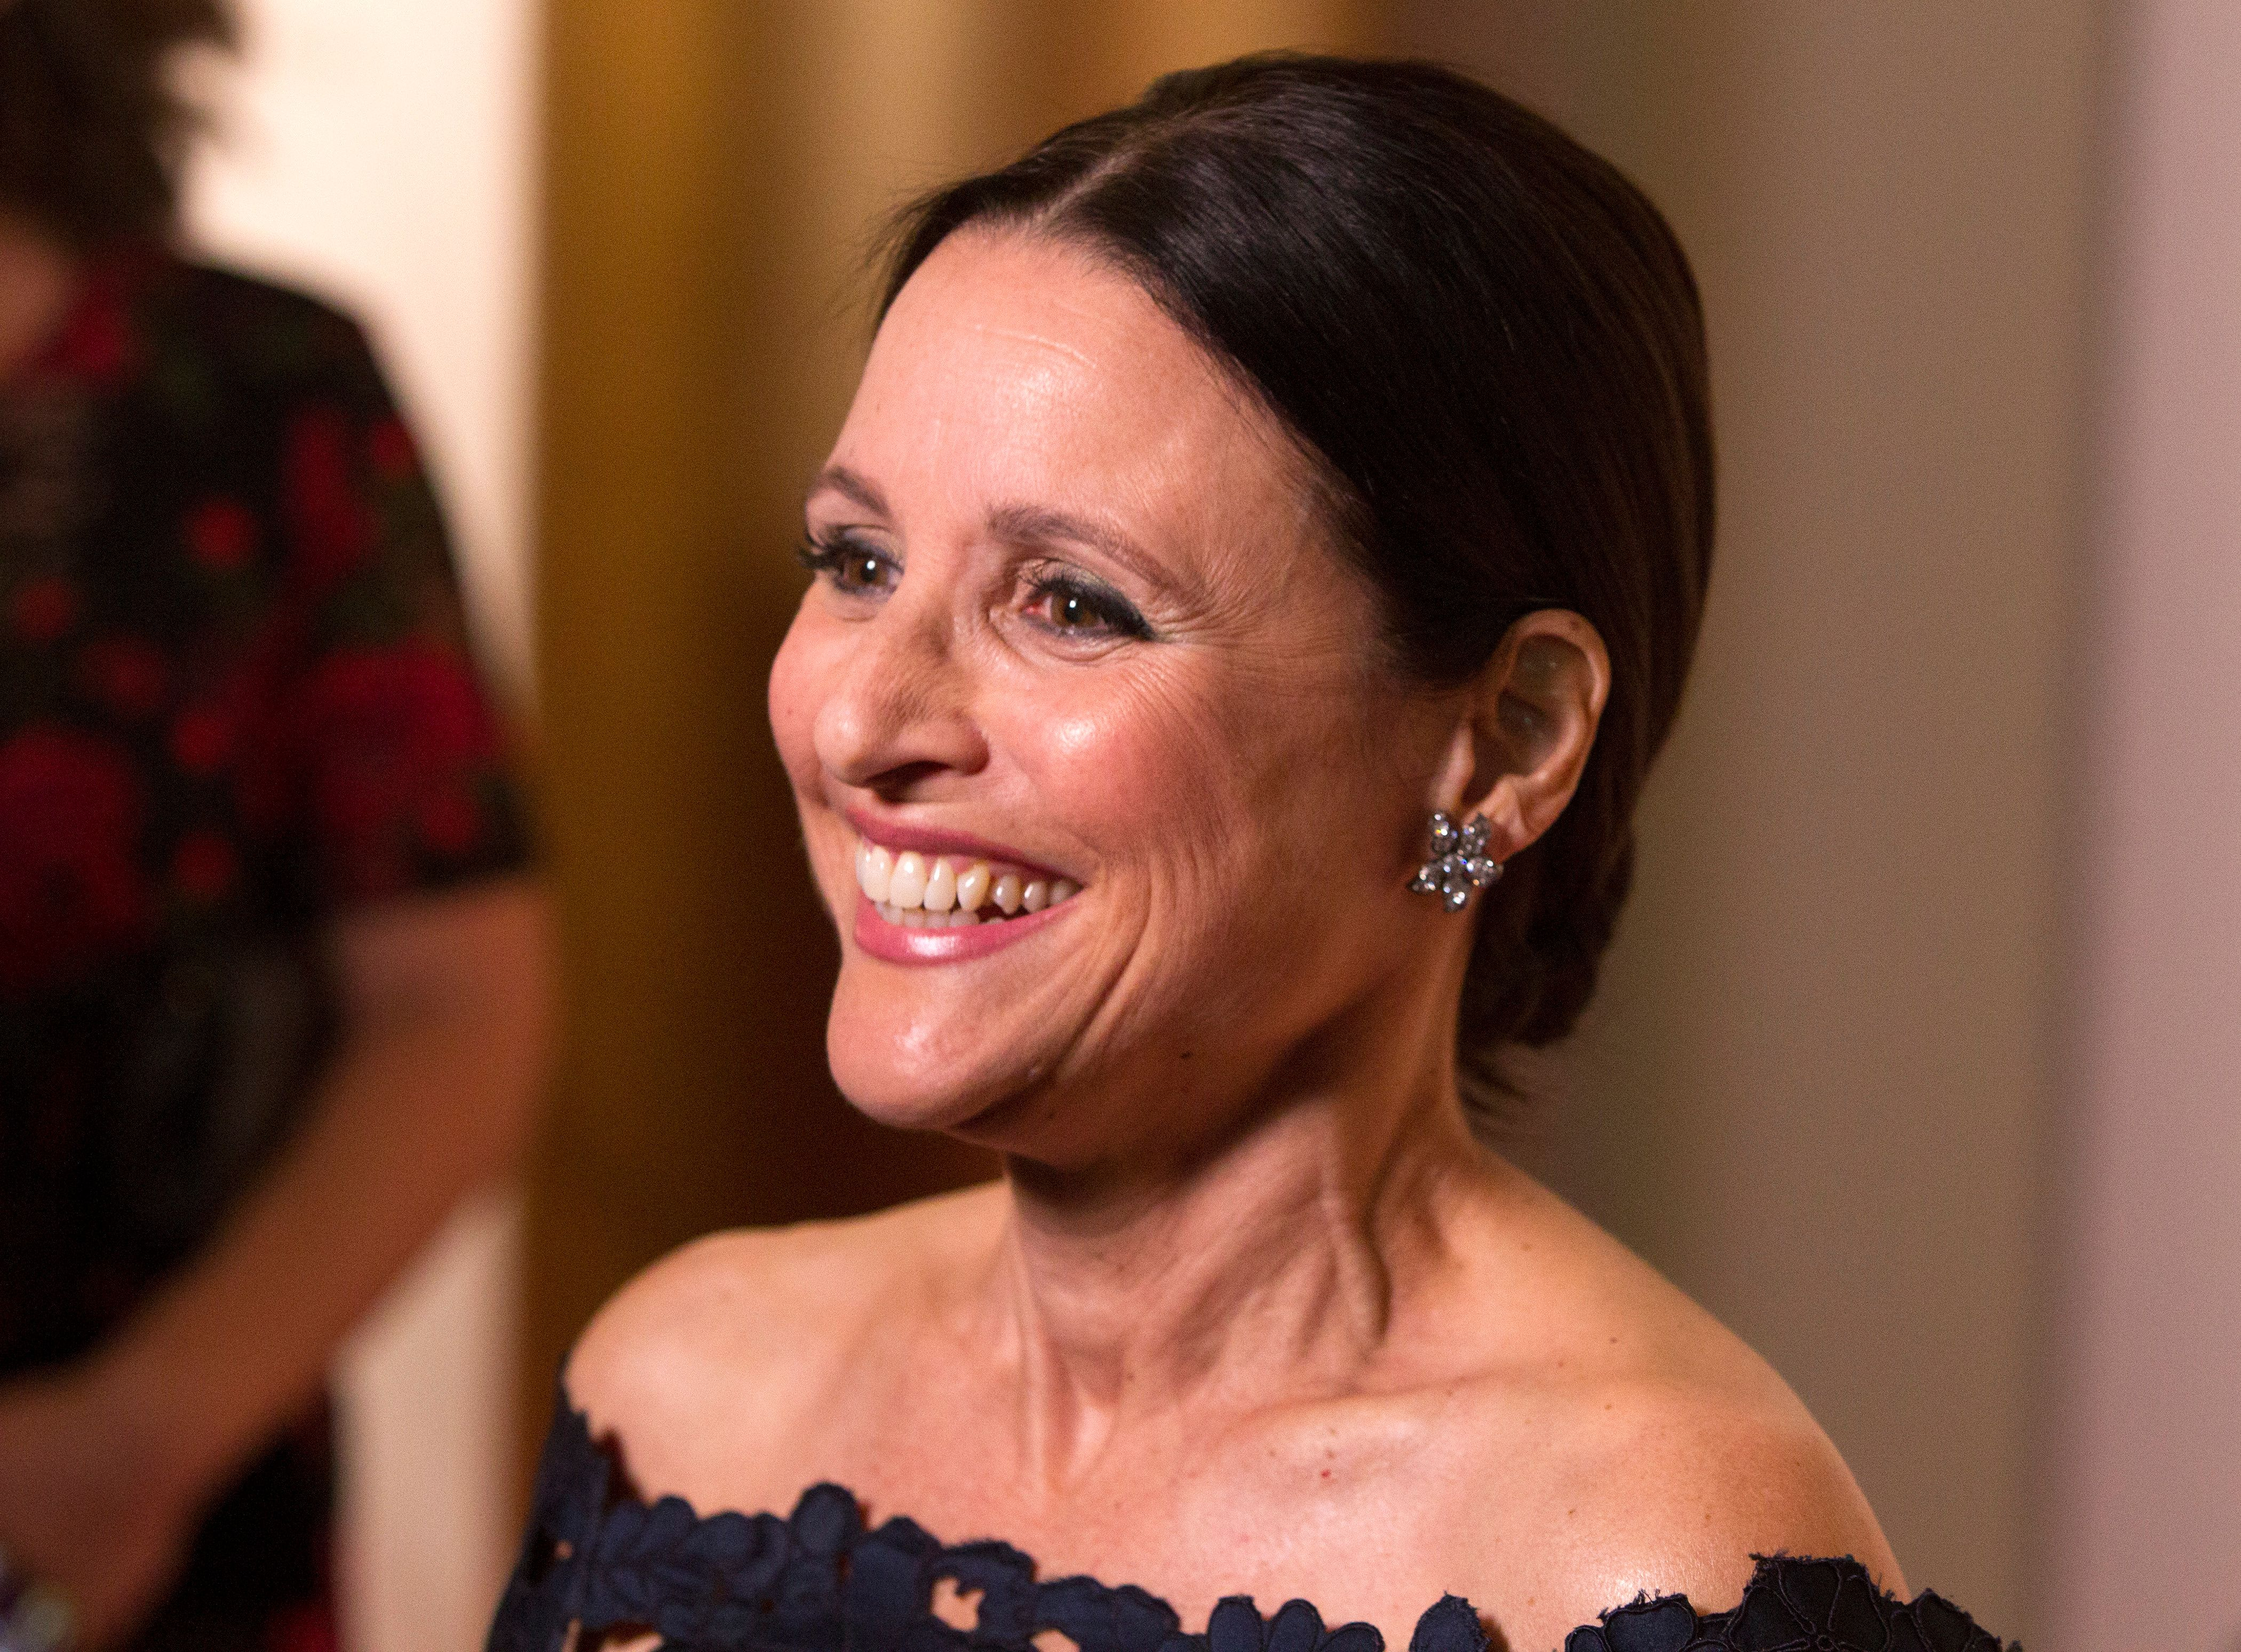 Julia Louis-Dreyfus arrives at the Kennedy Center for the Performing Arts for the 21st Annual Mark Twain Prize for American Humor presented to Julia Louis-Dreyfus on Sunday, Oct. 21, 2018, in Washington, D.C. (Photo by Owen Sweeney/Invision/AP)